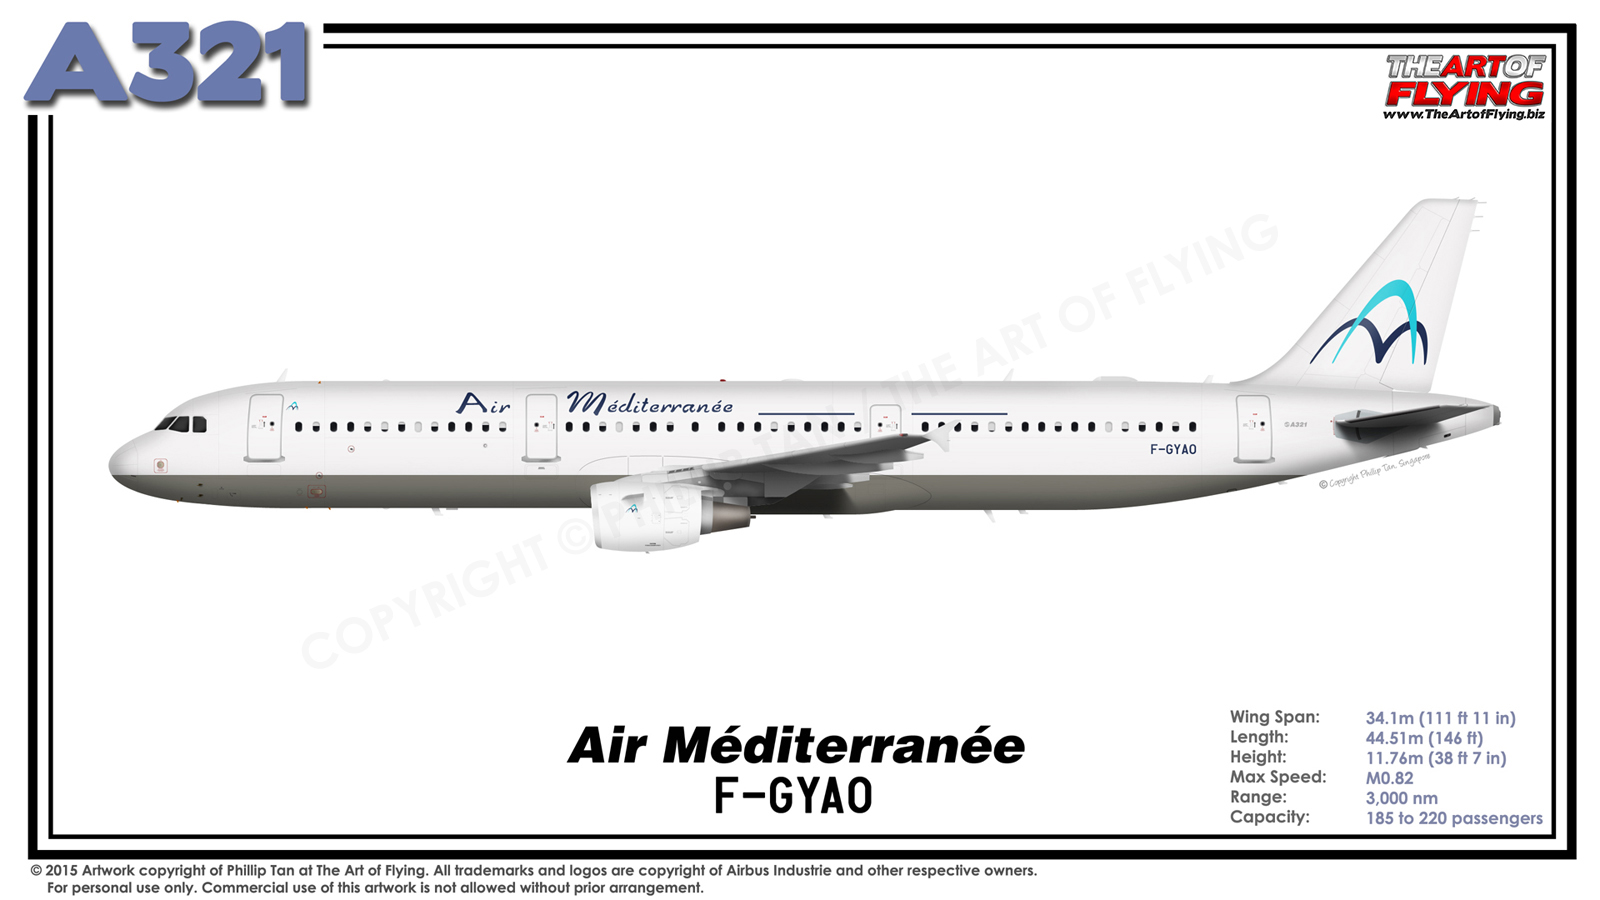 Airbus Industrie A321